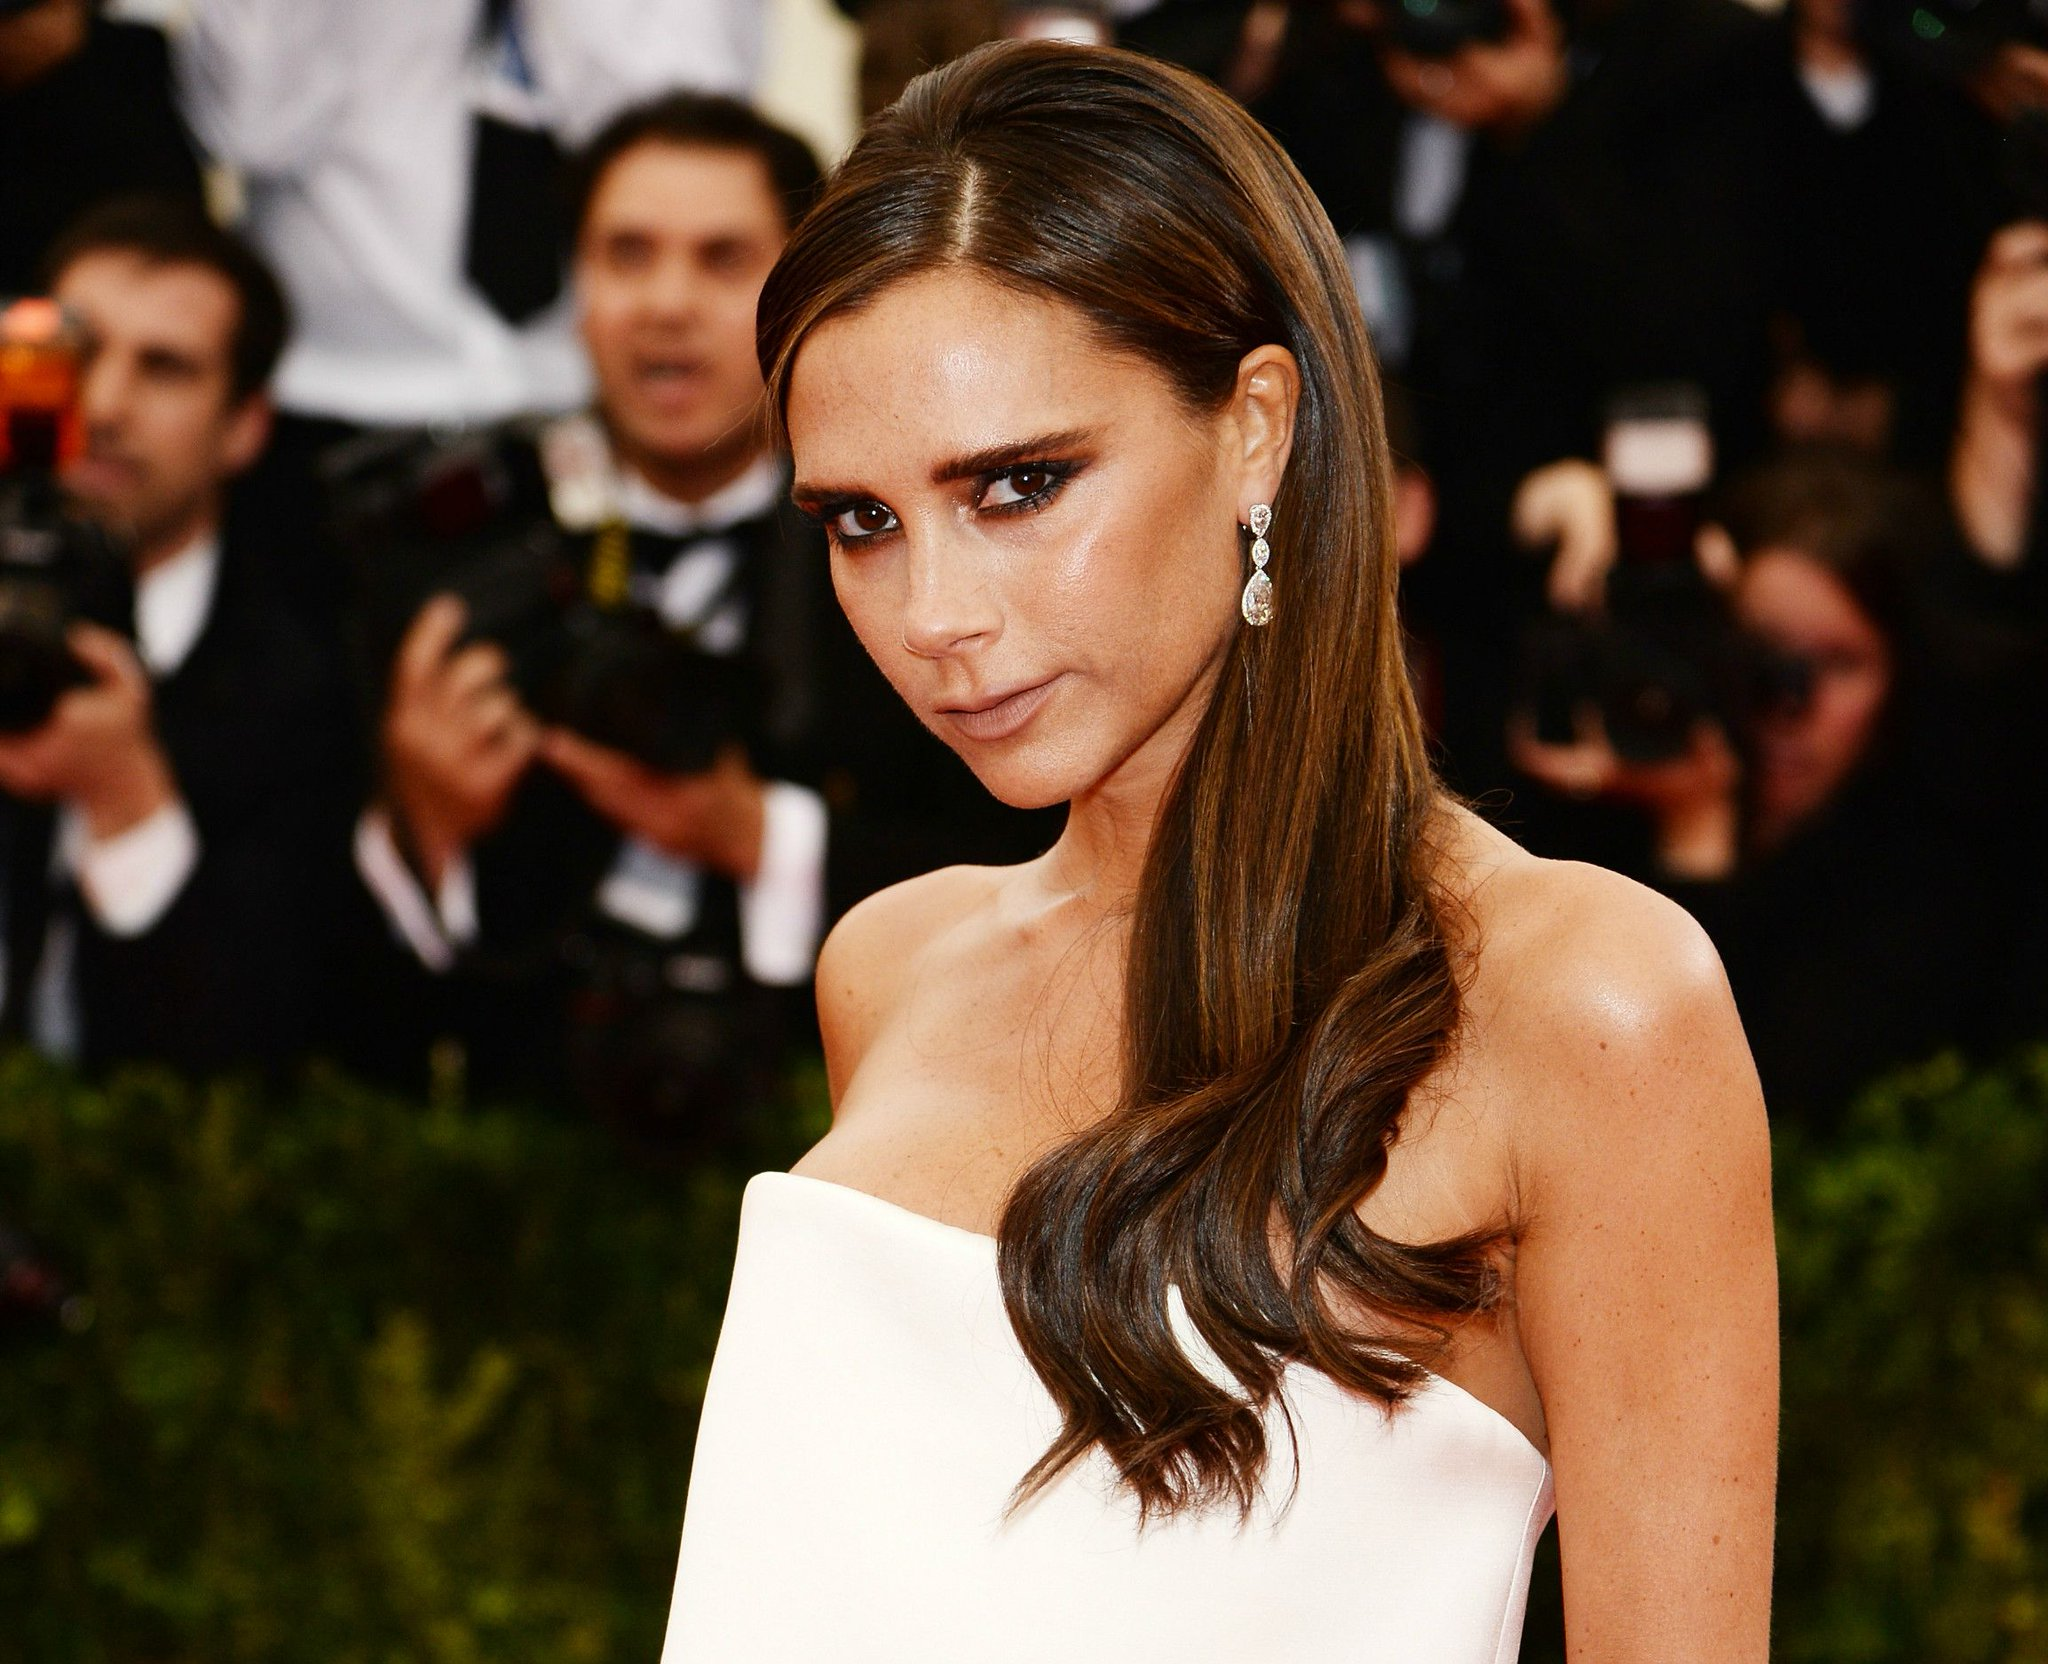 Victoria Beckham just explained why she doesn't smile (in the best way ever): https://t.co/u1BhWNP1dX https://t.co/h3Vm3RyyL9